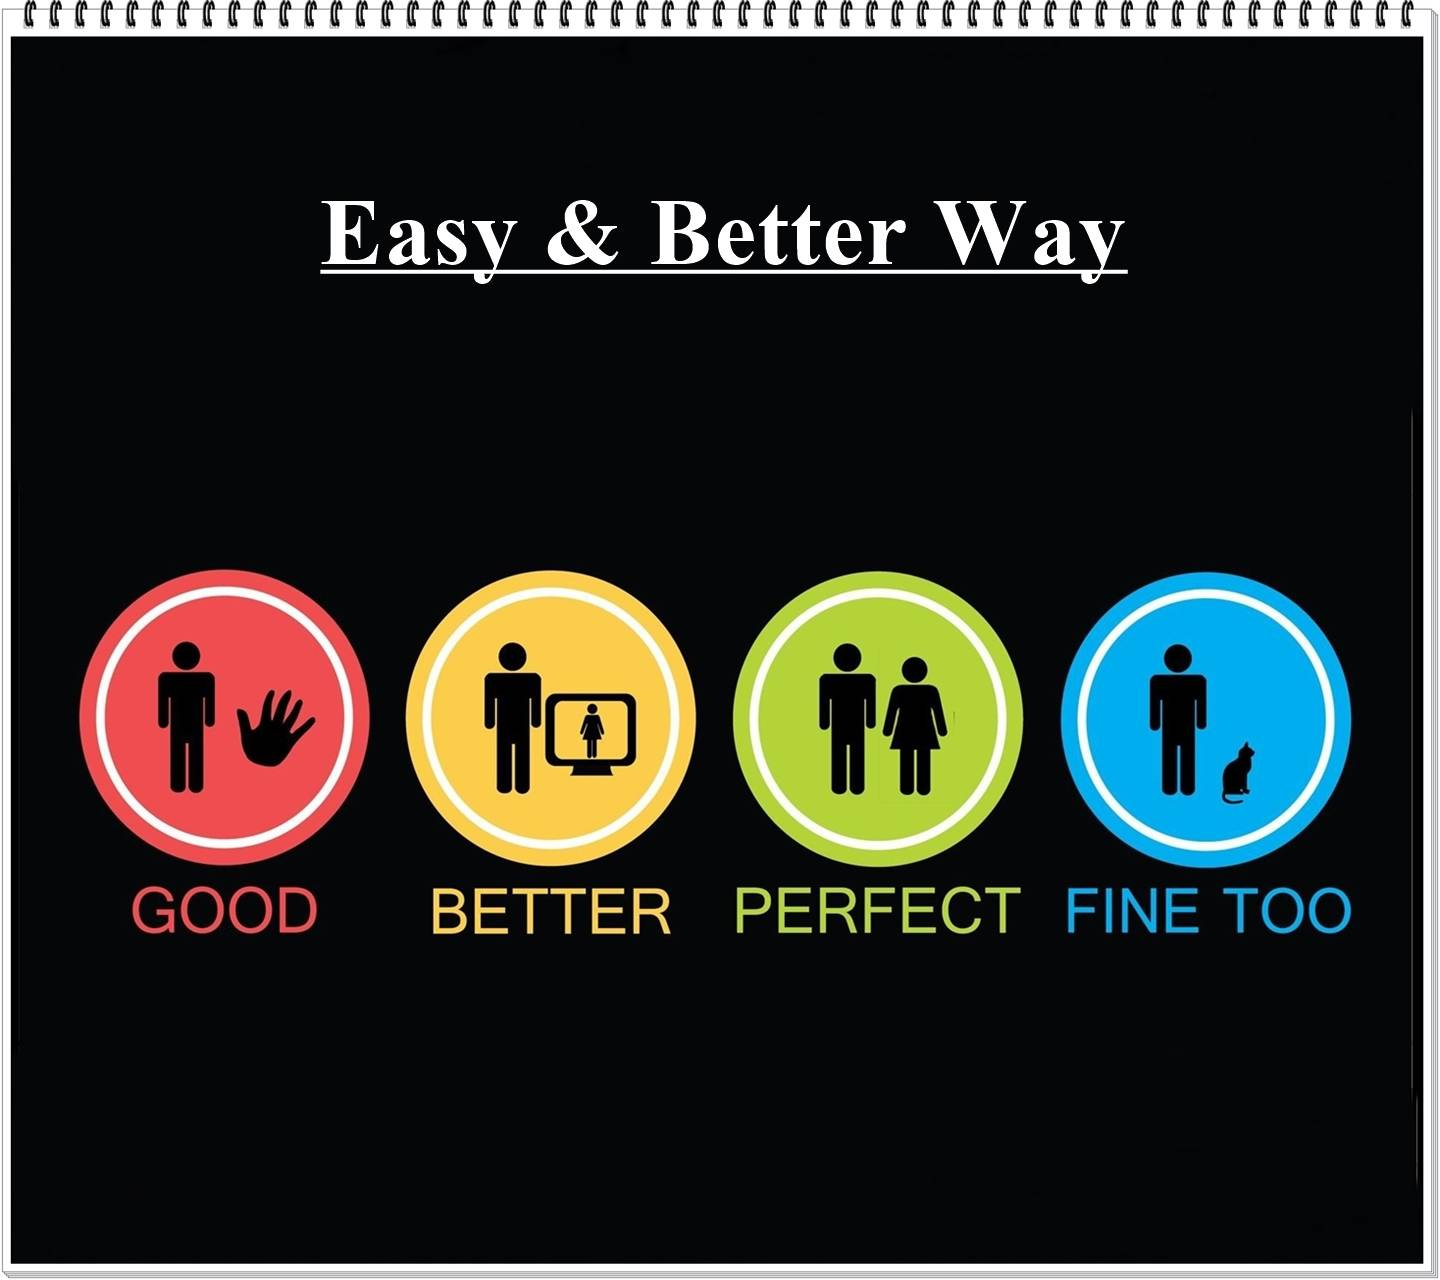 EASY AND BETTER WAY